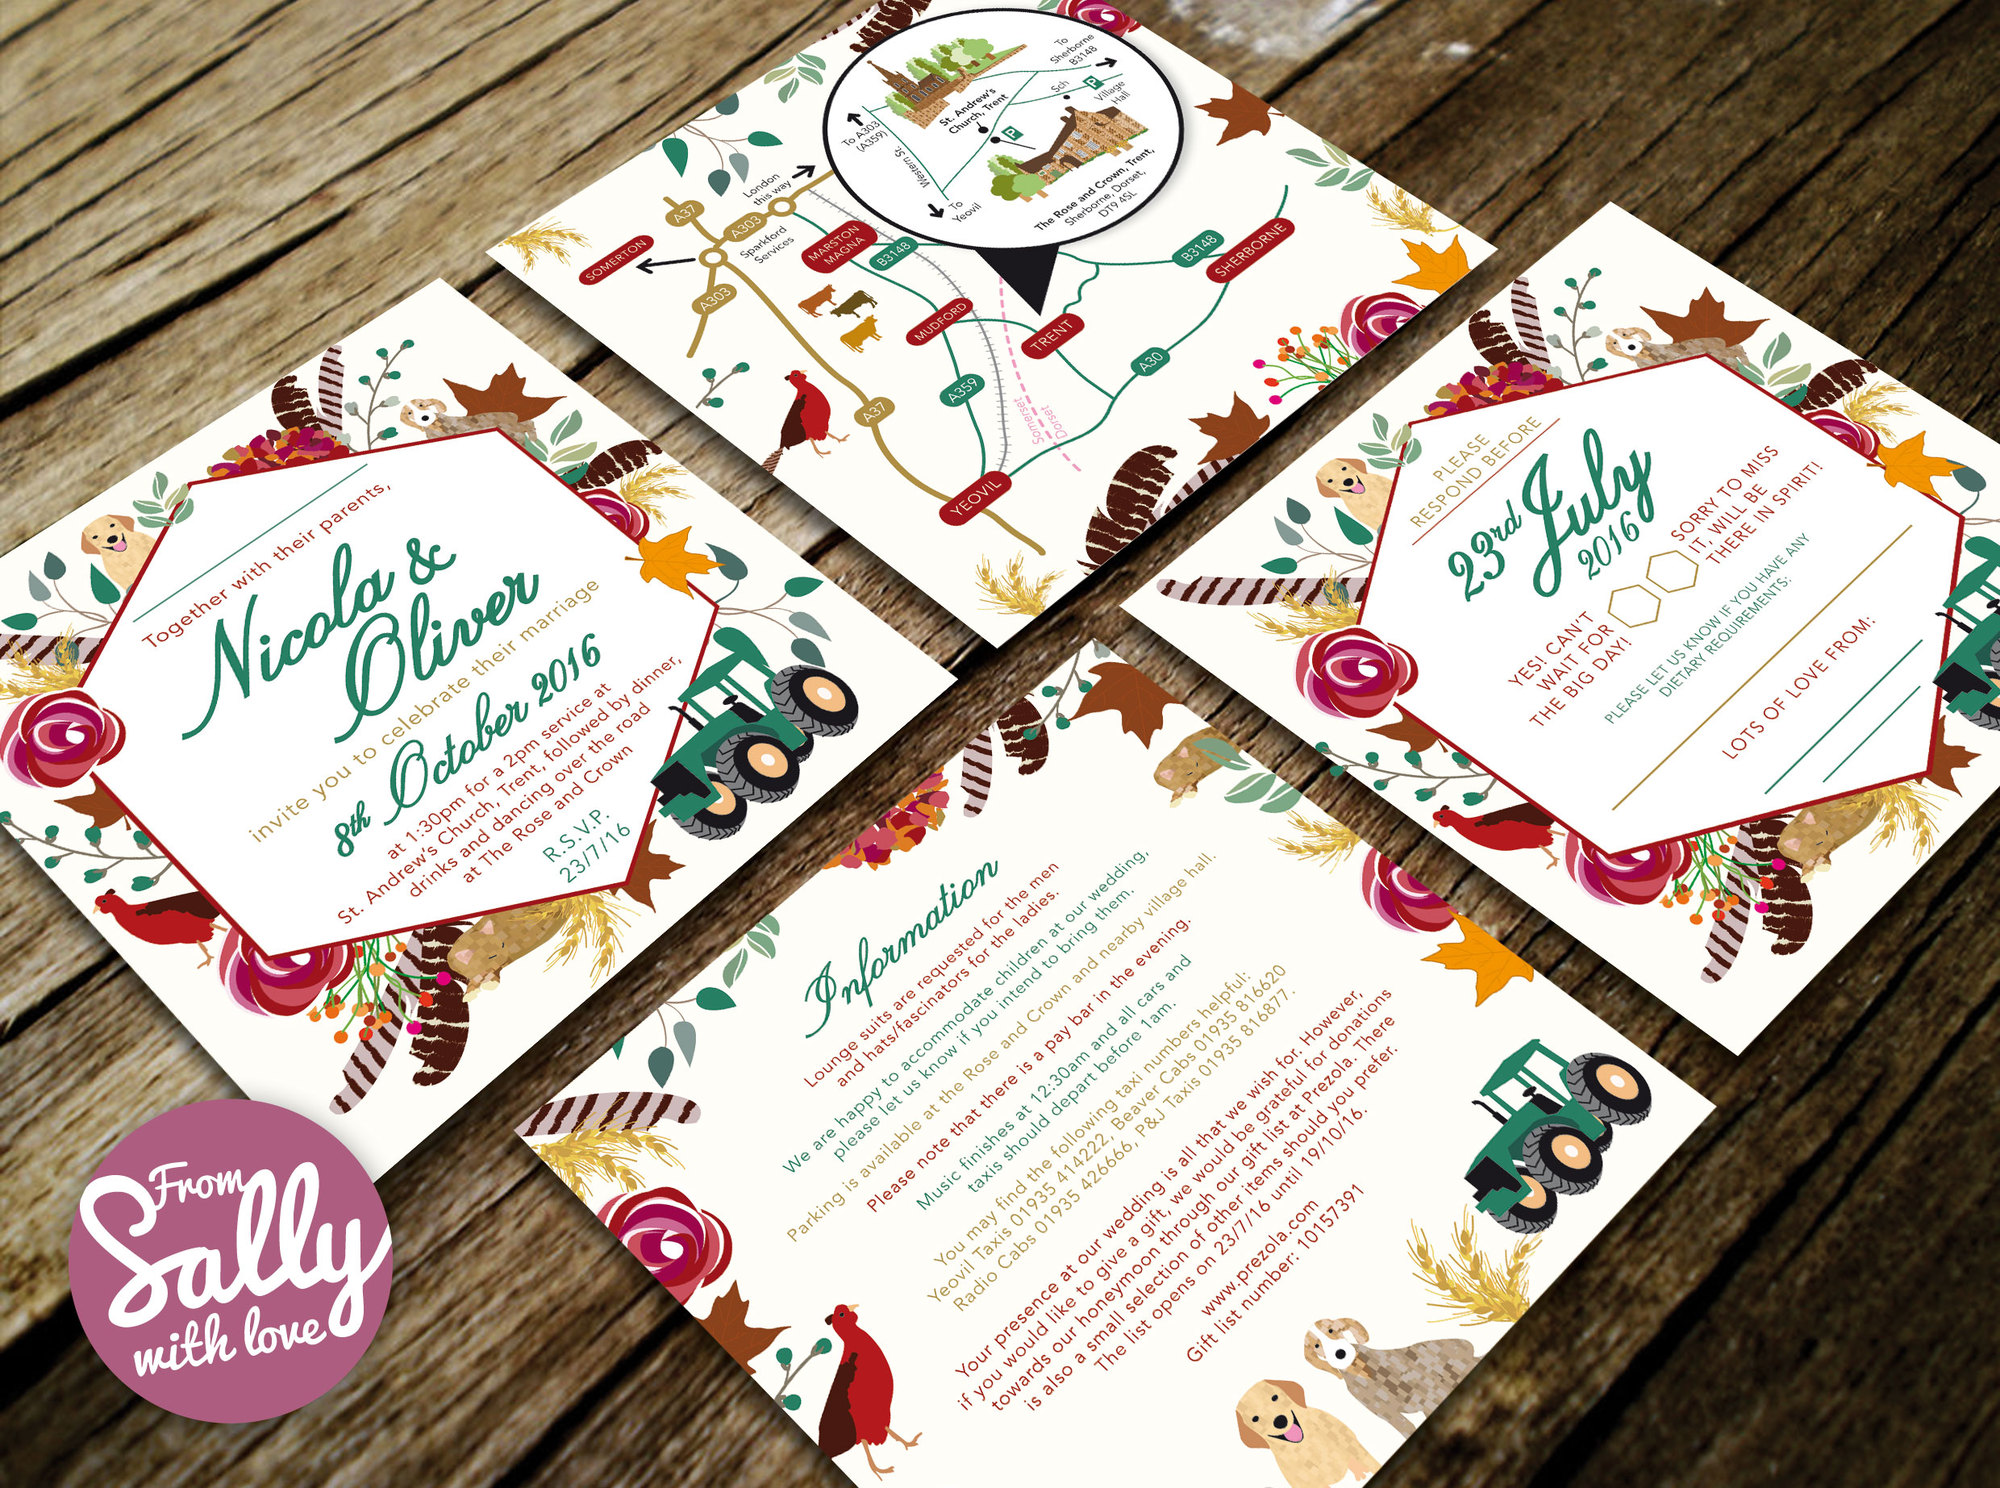 From Sally with Love, Wedding Invitations and Stationery In Frome ...